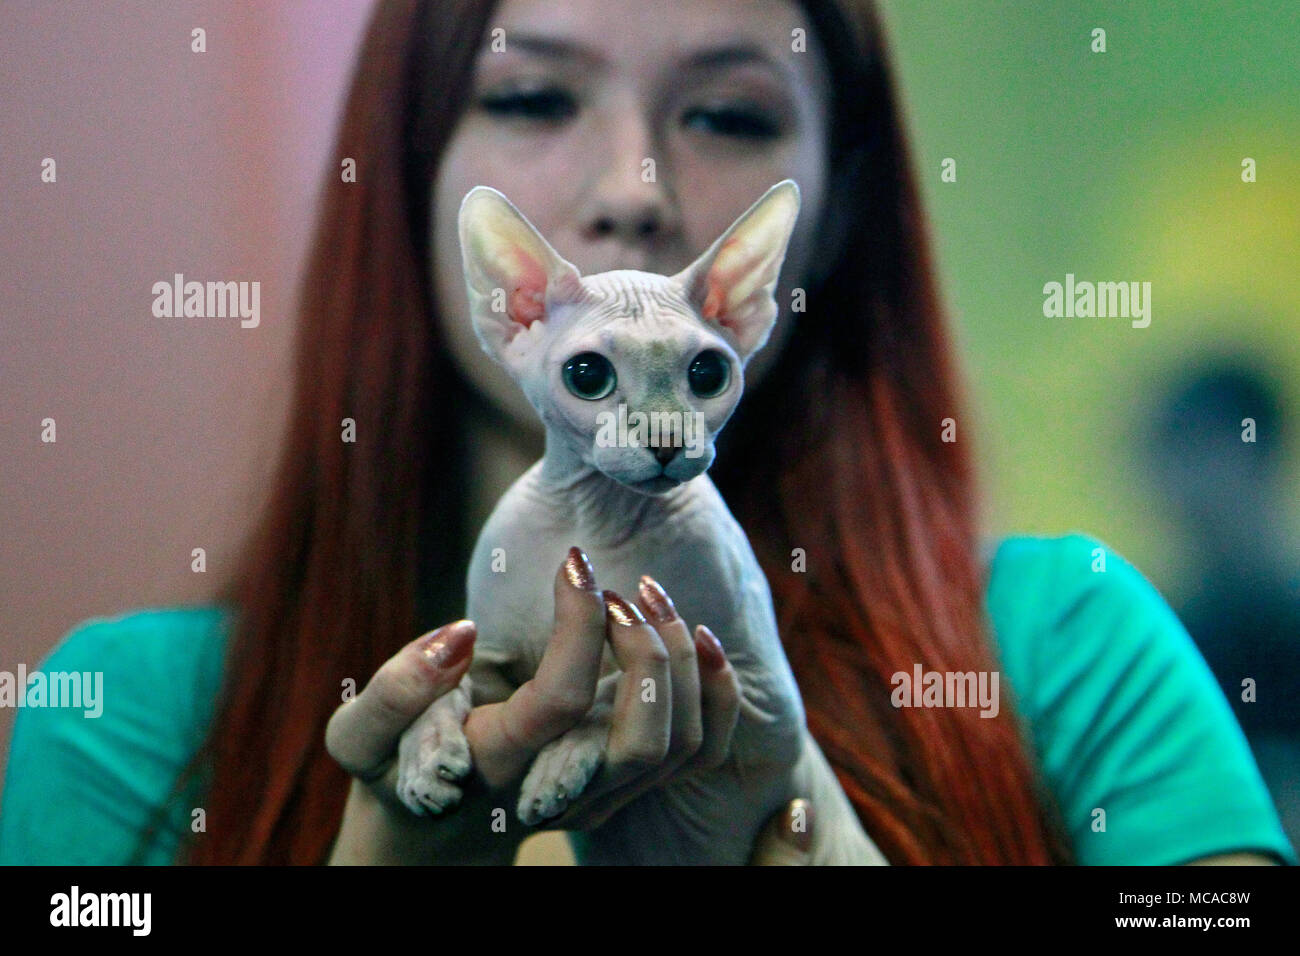 Bucharest, Romania. 14th Apr, 2018. A Sphinx cat is seen during the SofistiCat feline beauty contest in Bucharest, Romania, April 14, 2018. The two-day contest kicked off here on Saturday. Credit: Cristian Cristel/Xinhua/Alamy Live News - Stock Image